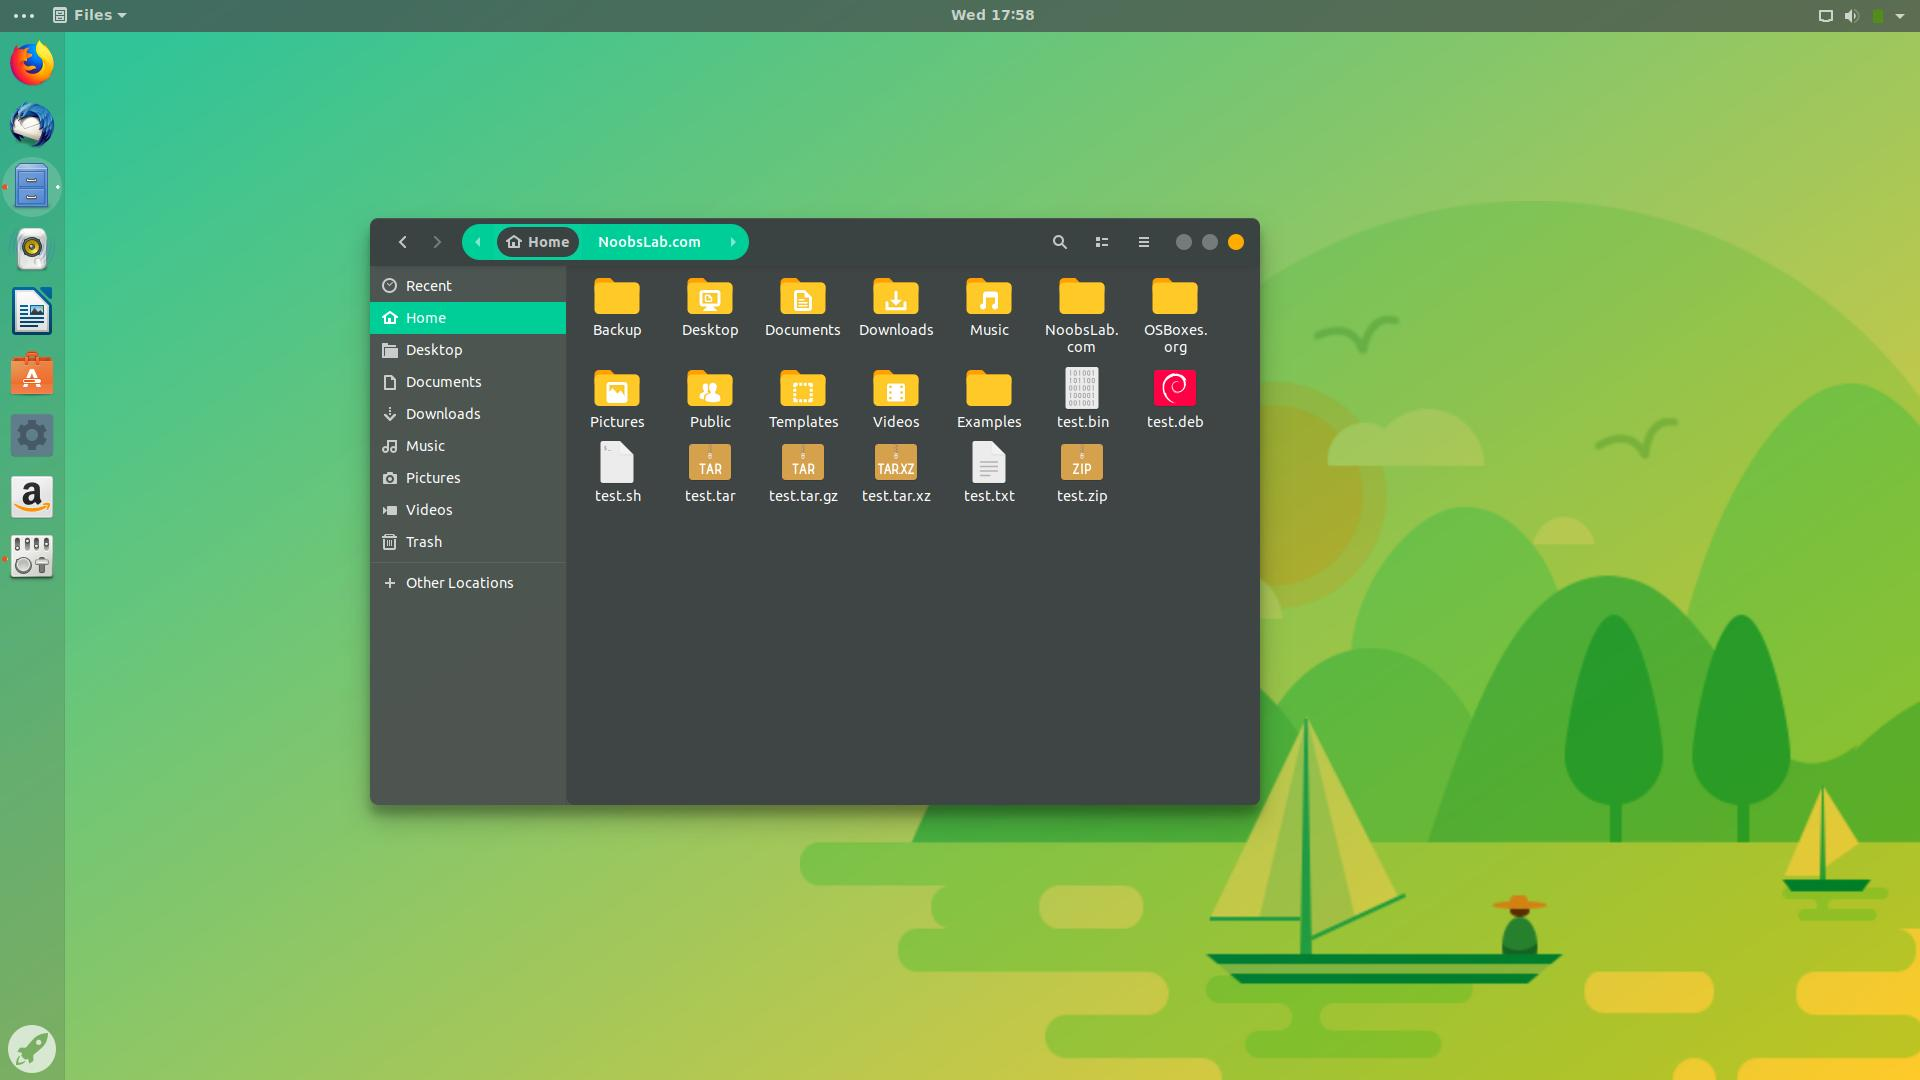 Canta: Best Theme And Icons Pack Around For Ubuntu/Linux